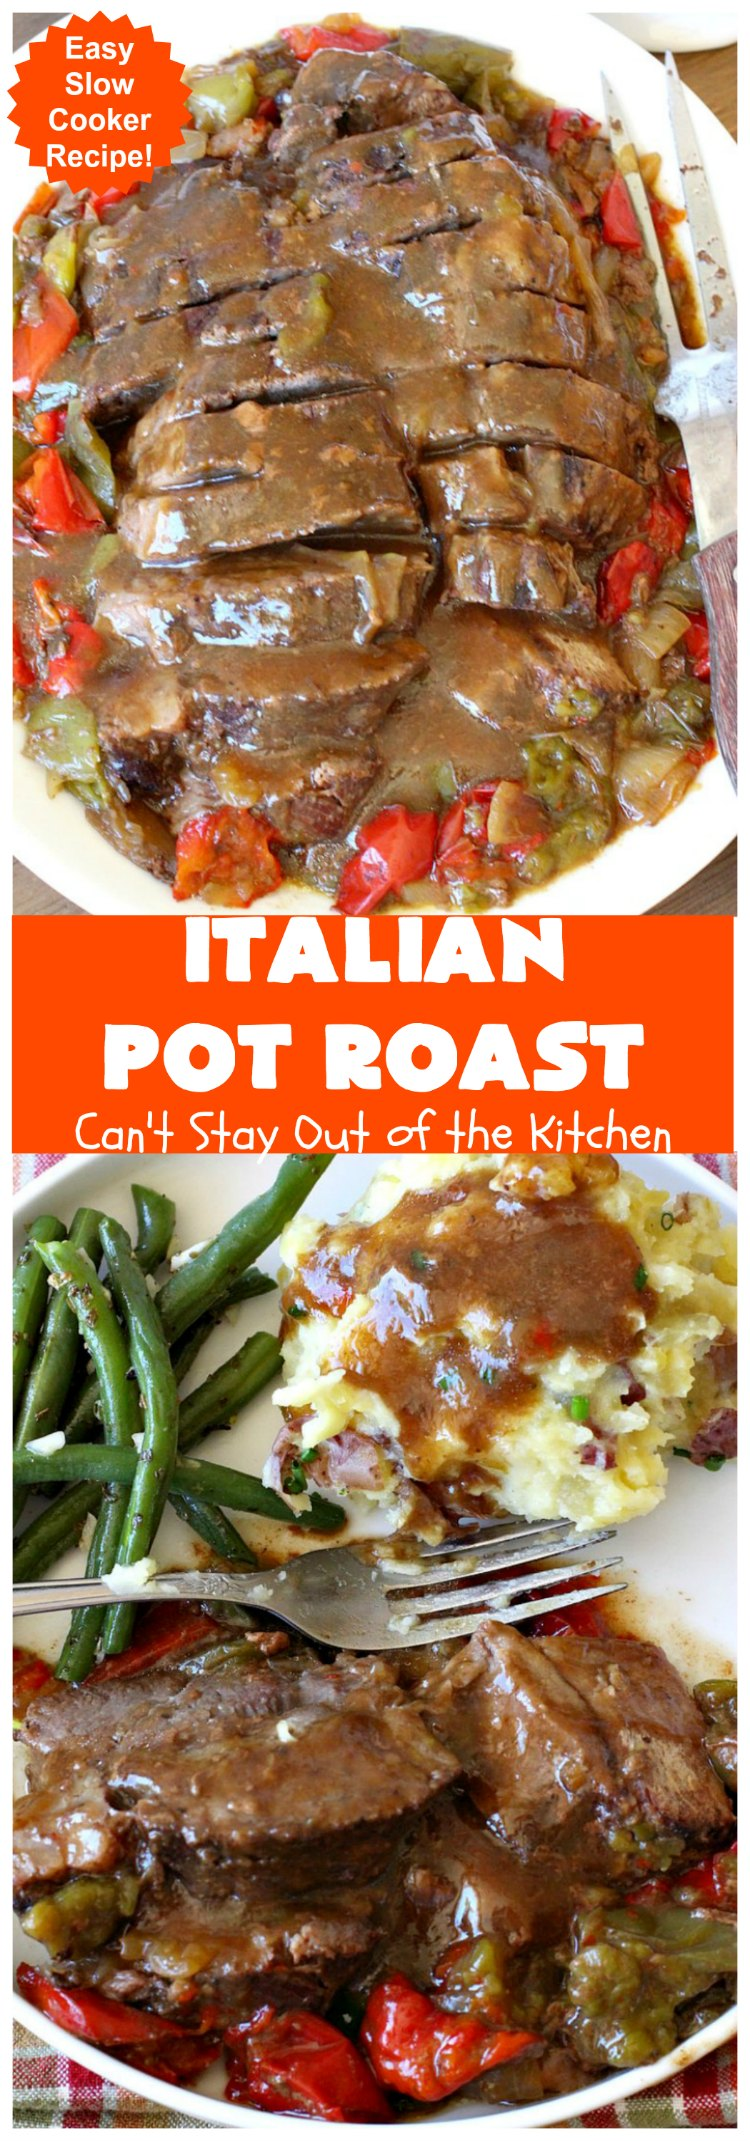 Italian Pot Roast   Can't Stay Out of the Kitchen   This super easy 7-ingredient #PotRoast #recipe is made in the #SlowCooker. Scrumptious to the taste buds and so quick & simple to prepare. Great for weeknight or company dinners. #Italian #ItalianPotRoast #Crockpot